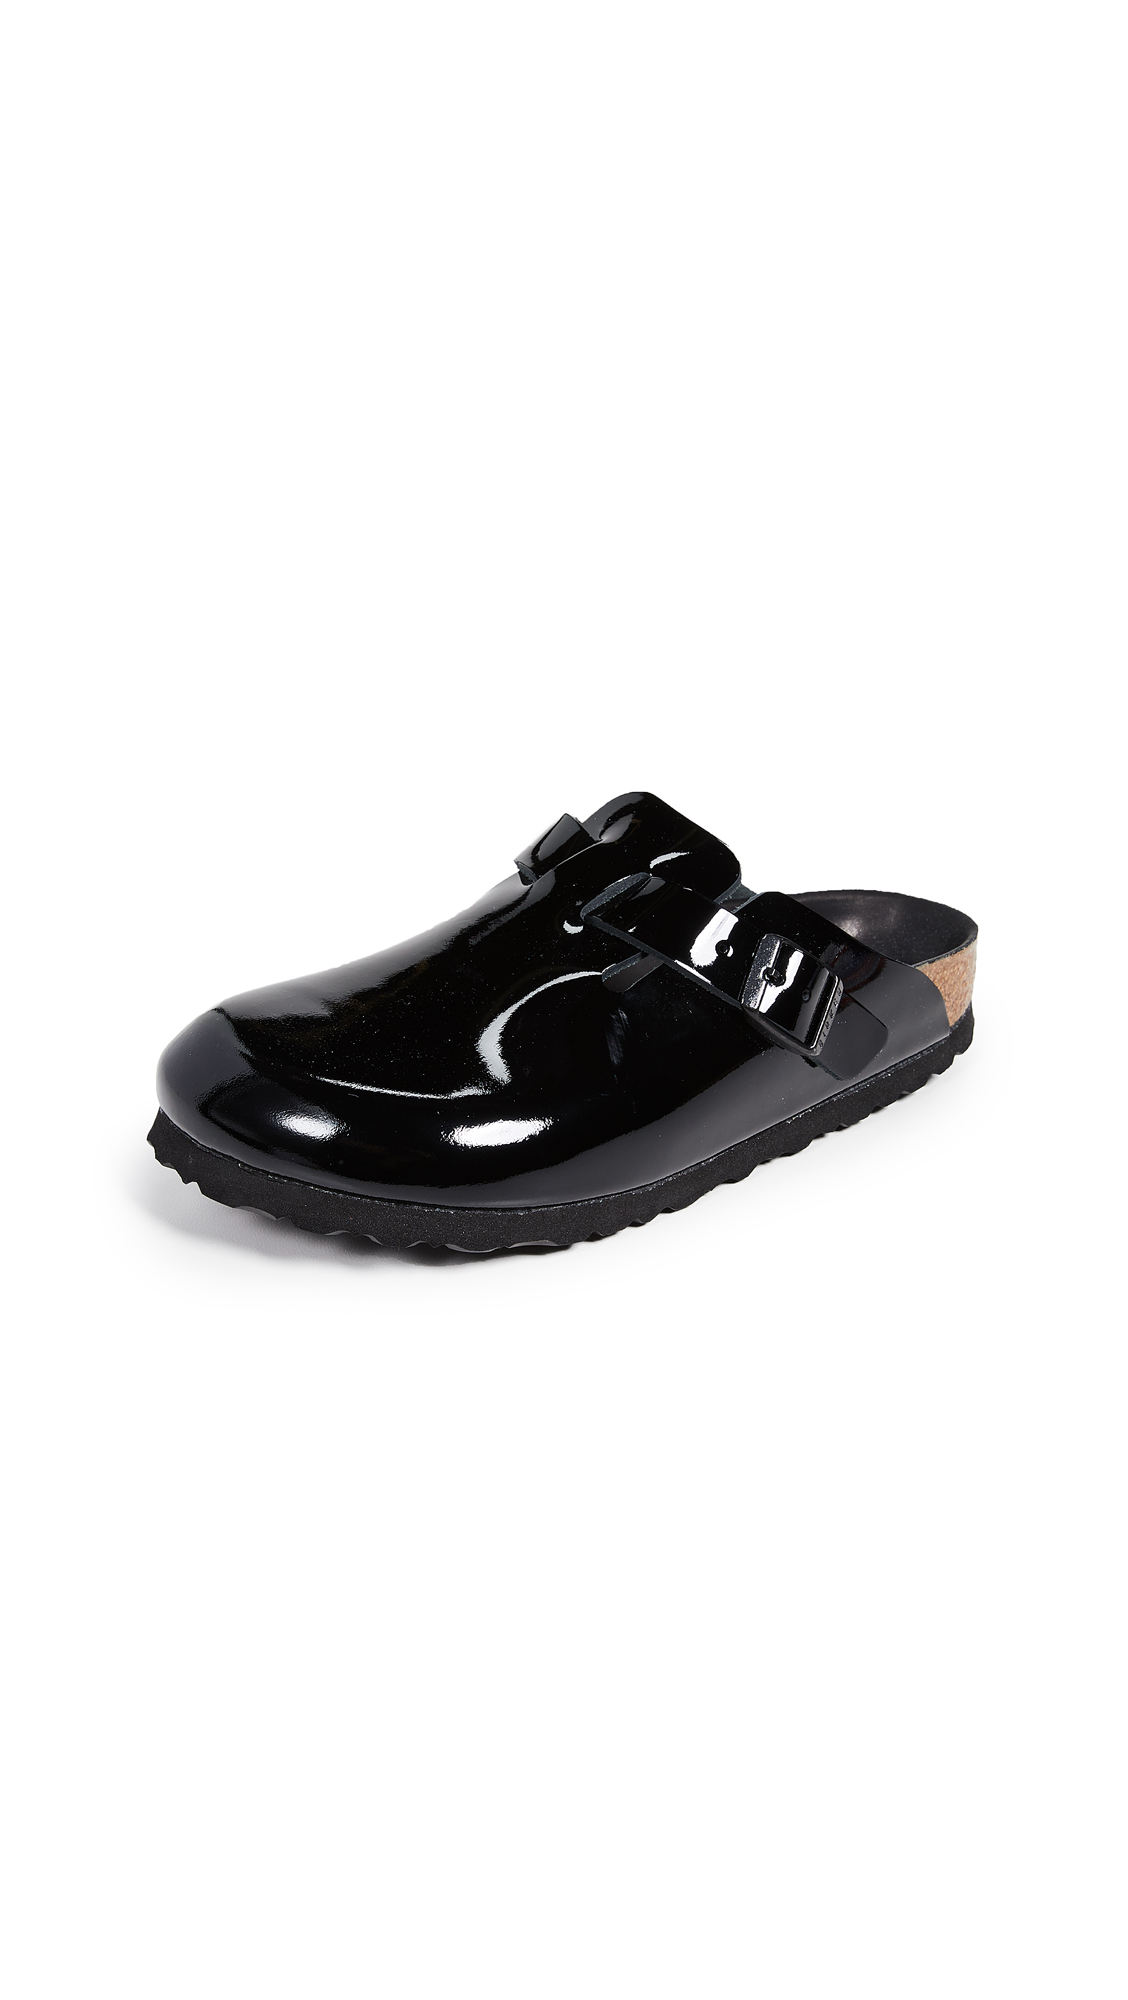 Birkenstock Boston Black Patent Clogs